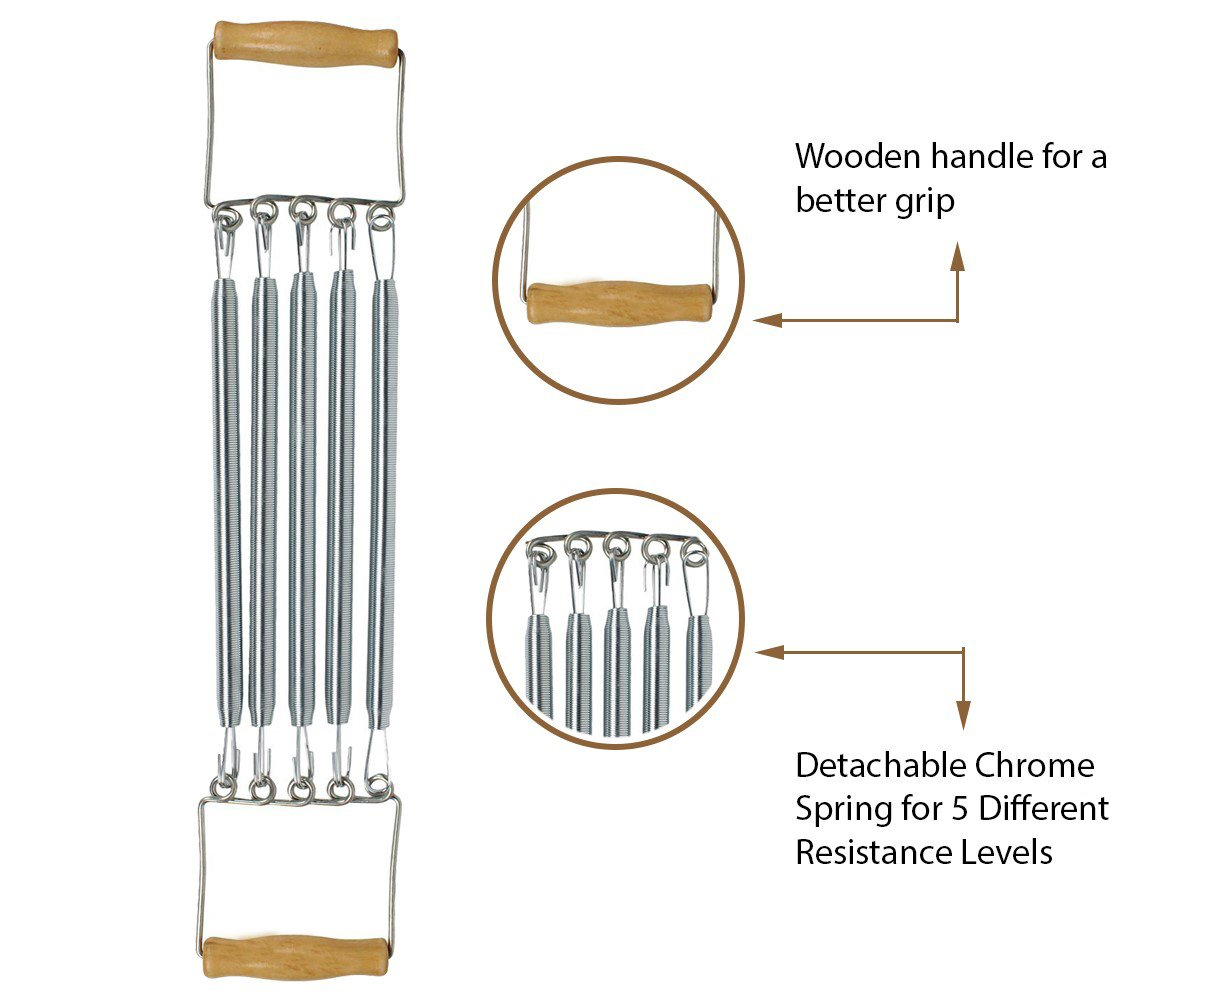 Strauss Chest Expander product image